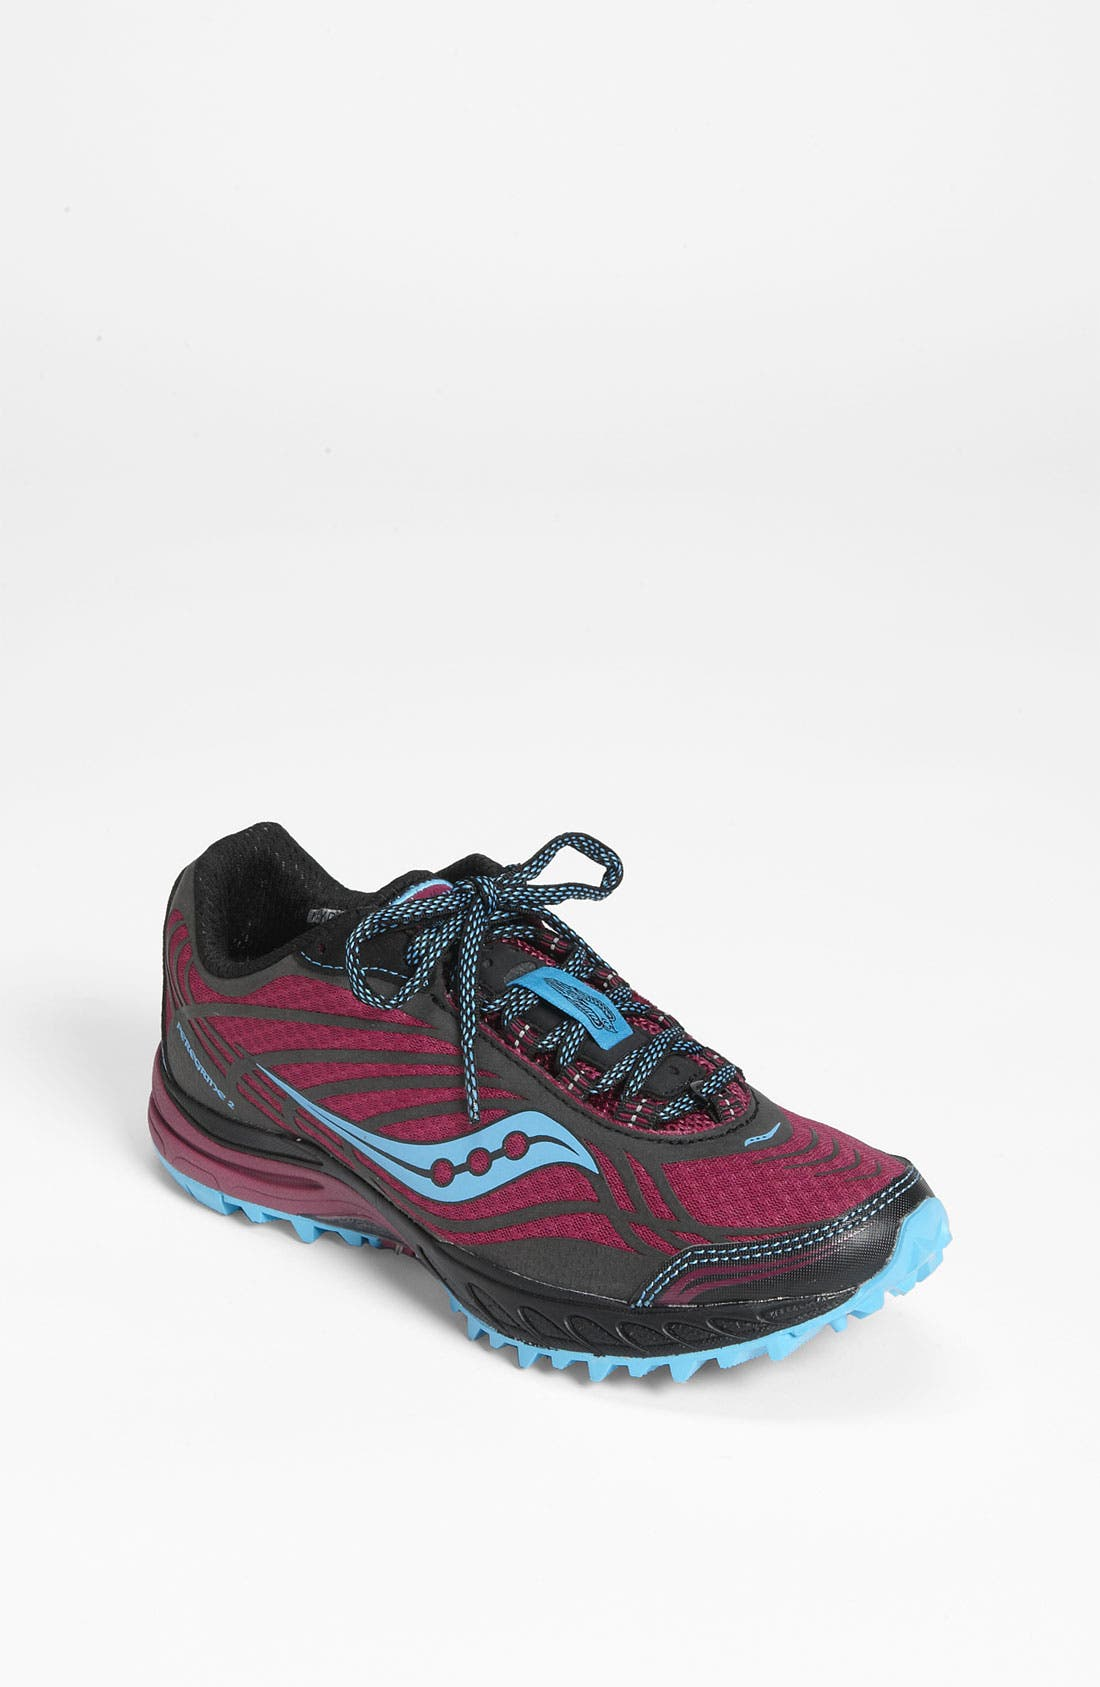 Alternate Image 1 Selected - Saucony 'ProGrid Peregrine 2' Running Shoe (Women)